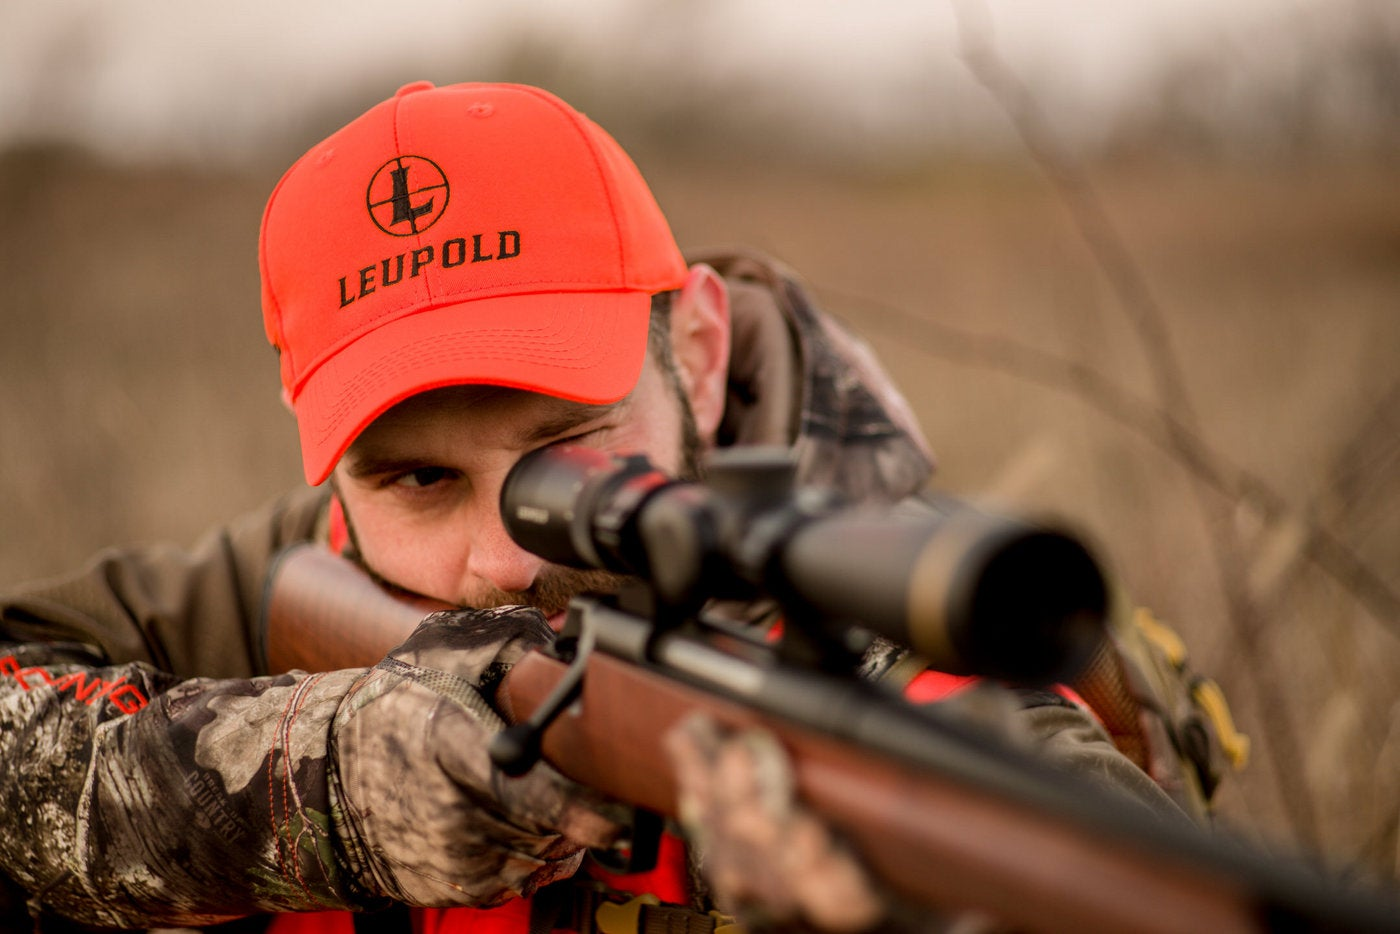 Top 5 Shooting Mistakes Hunters Make (And How to Fix Them)